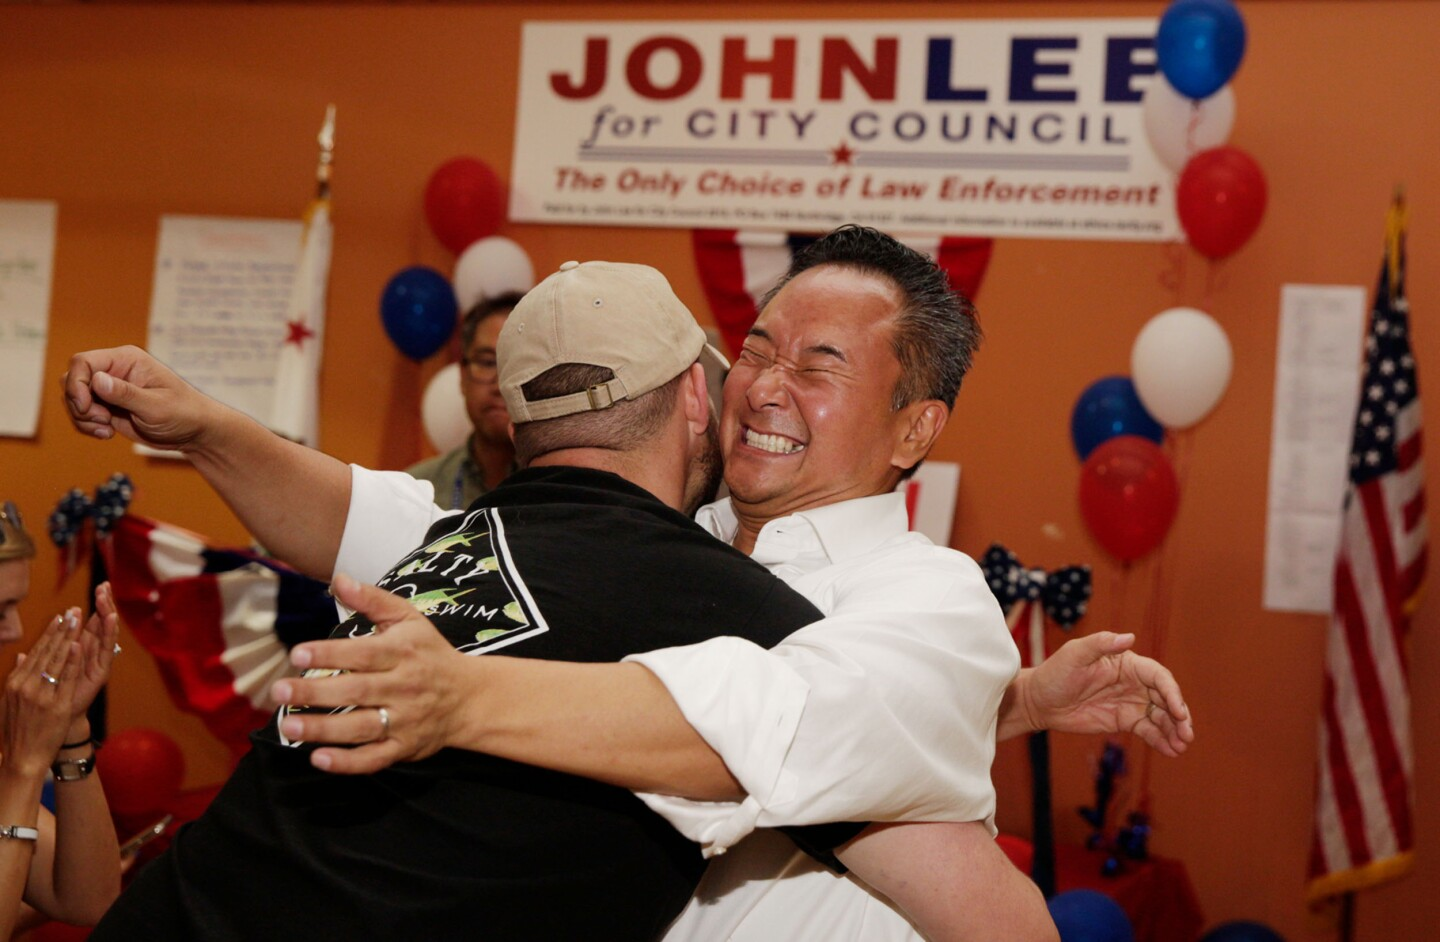 "PORTER RANCH, CALIF. - AUGUST 14, 2019: Longtime friend Erich King picks up newly elected Councilman John Lee during his election night the Los Angeles City Council District 12 on Wednesday, Aug. 14, 2019 in Porter Ranch, Calif. ""His whole life has been about city twelve, and his goal is to represent this community,"" King says. ""That's why we're on his side."" (Liz Moughon / Los Angeles Times)"